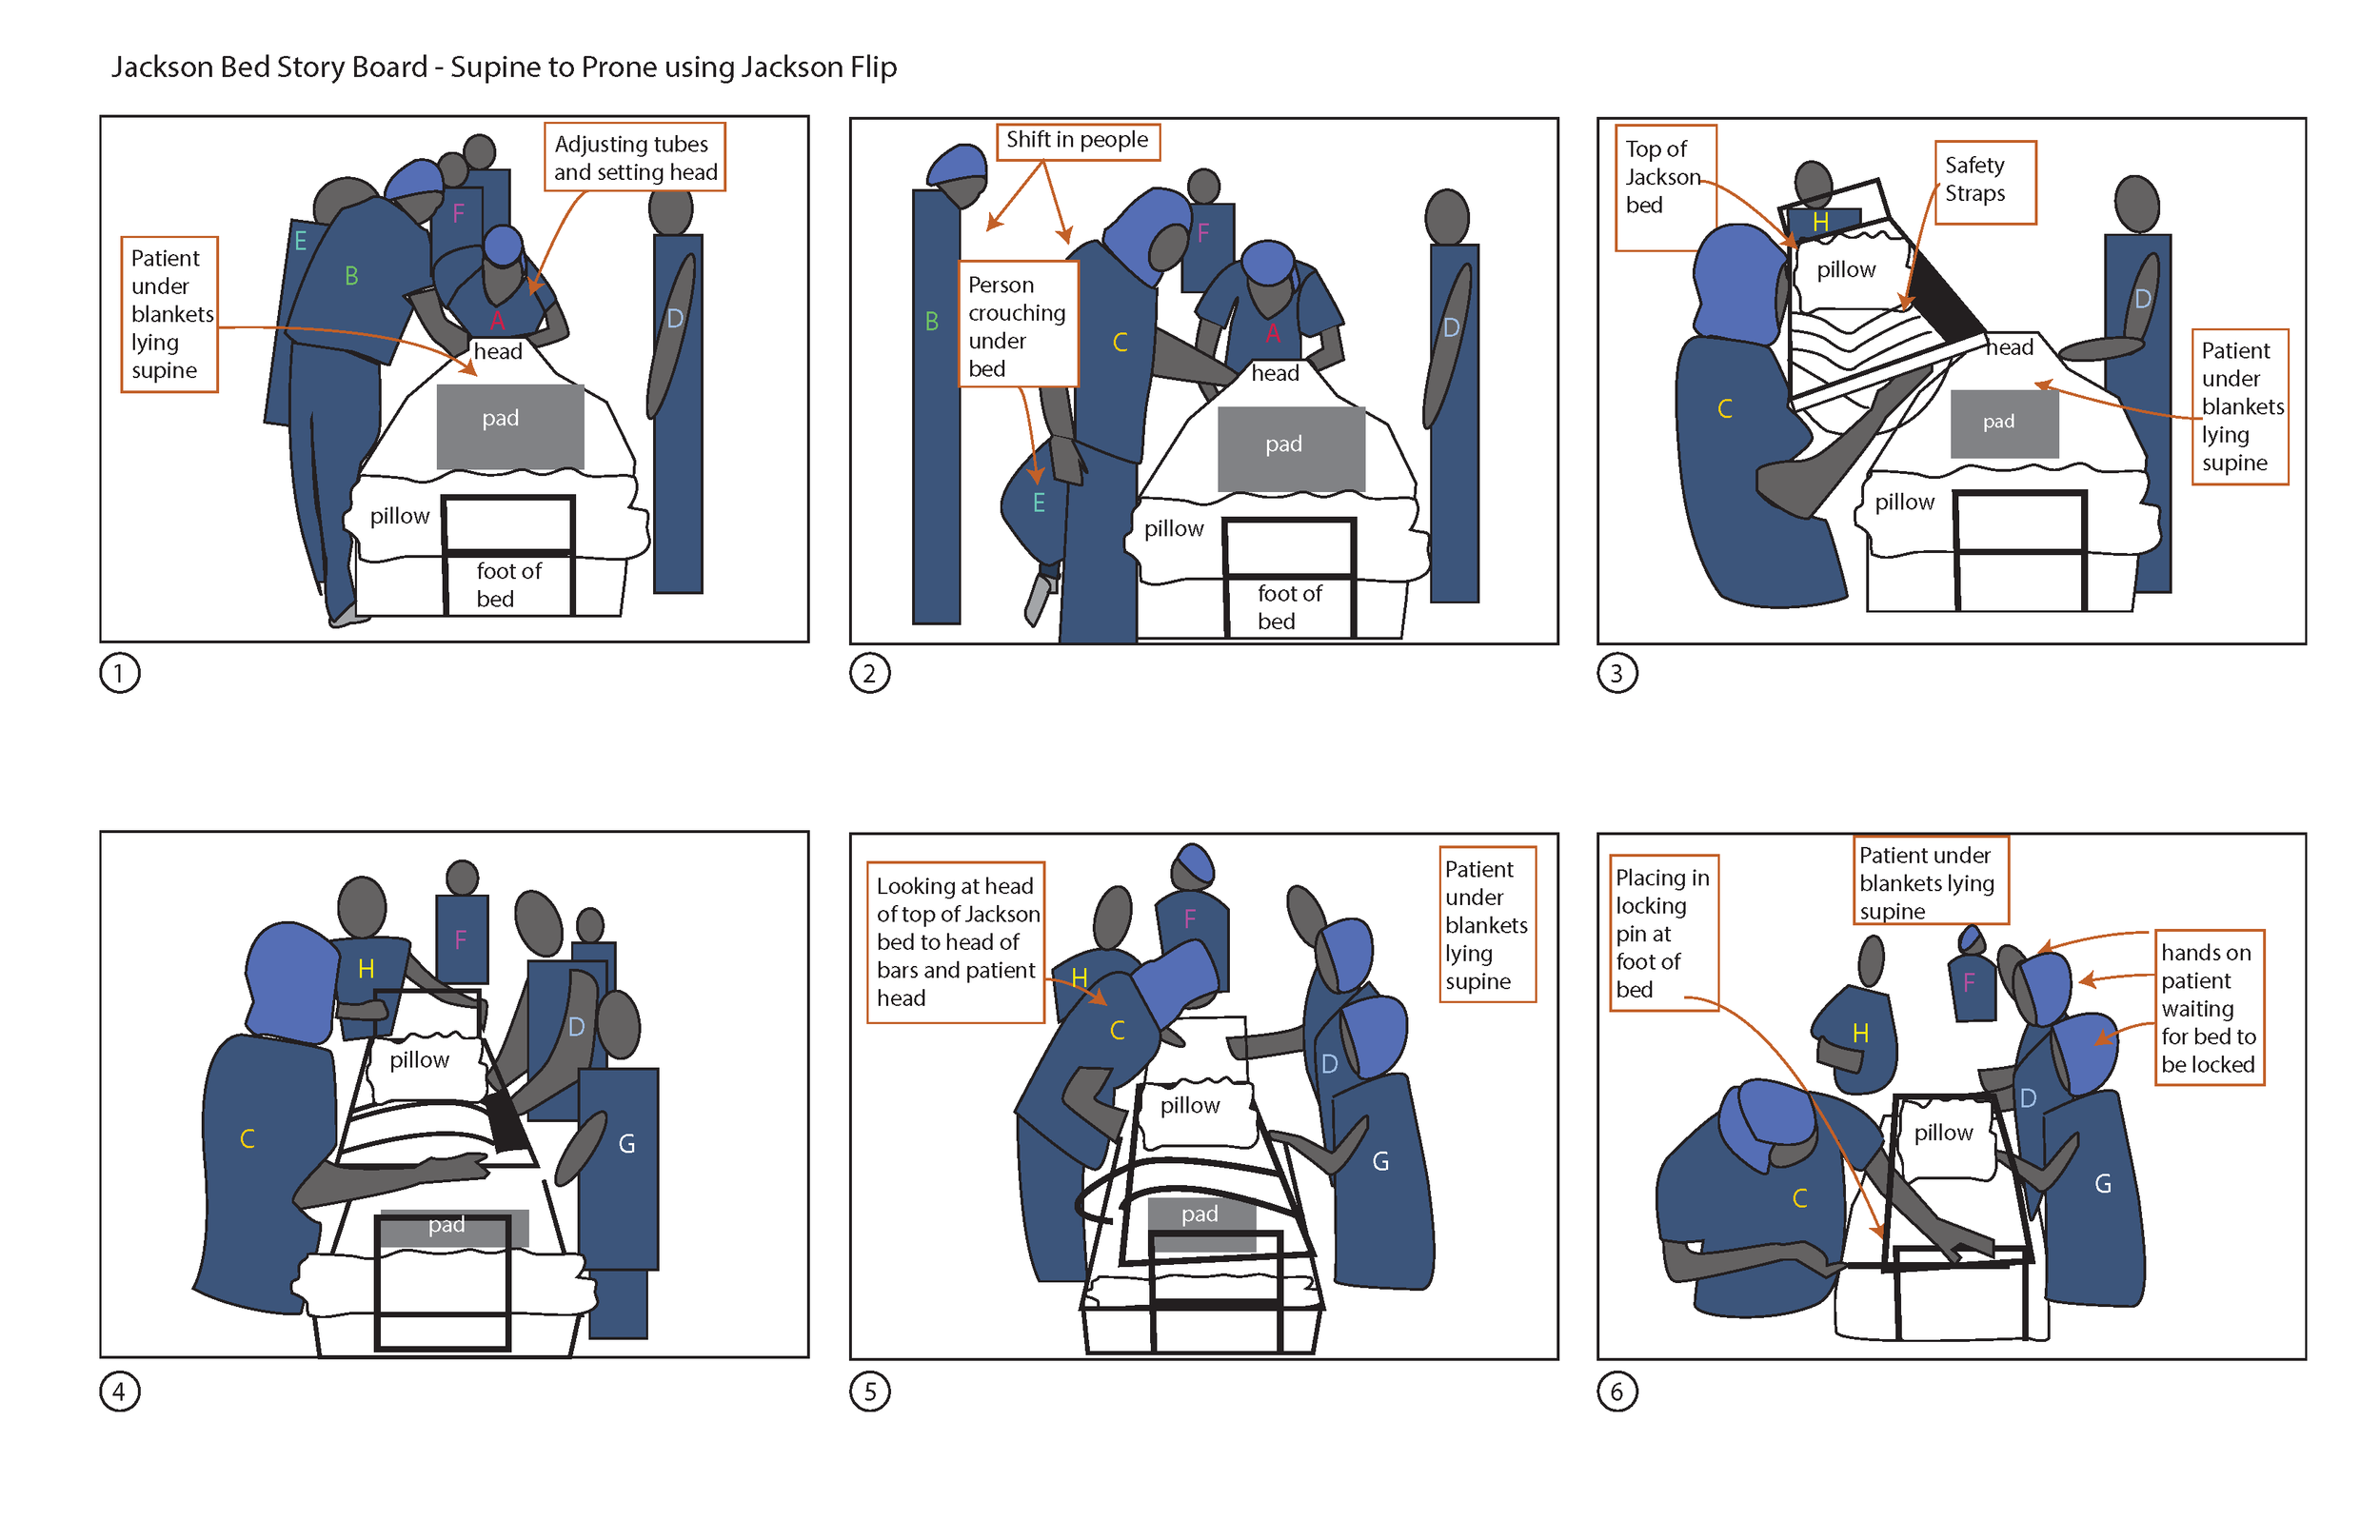 Storyboard for flipping a patient during spinal cord surgery